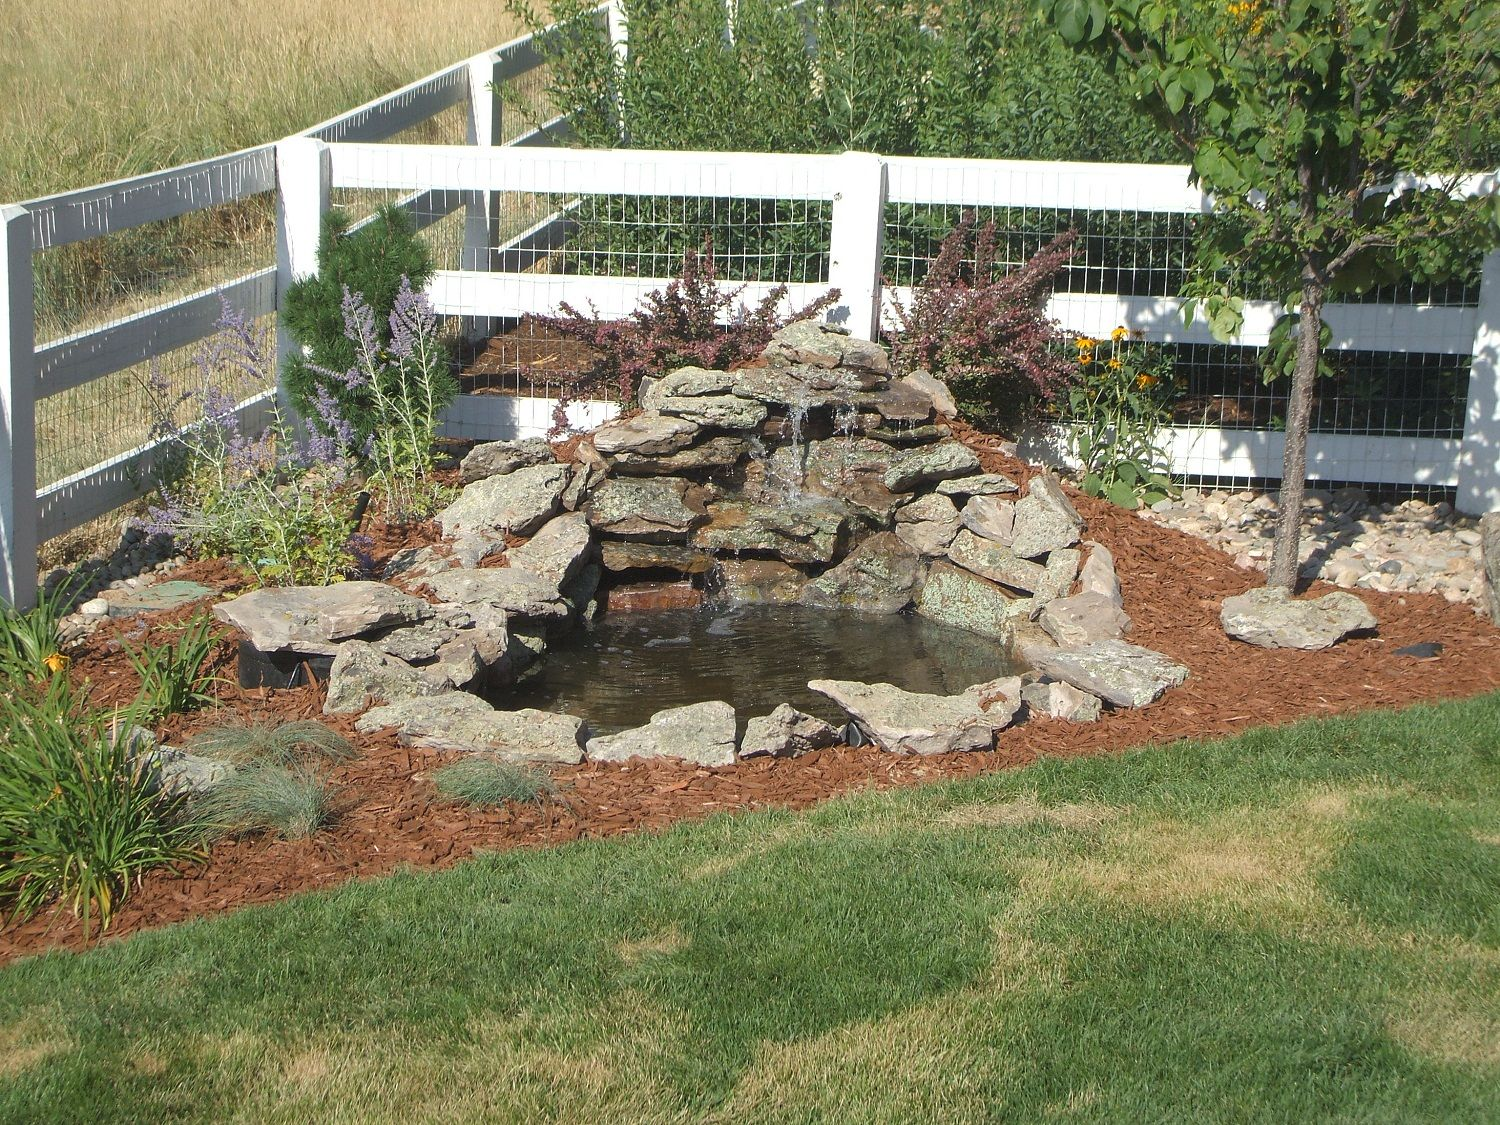 Garden and patio small diy ponds with waterfall and stone for Yard ponds and waterfalls